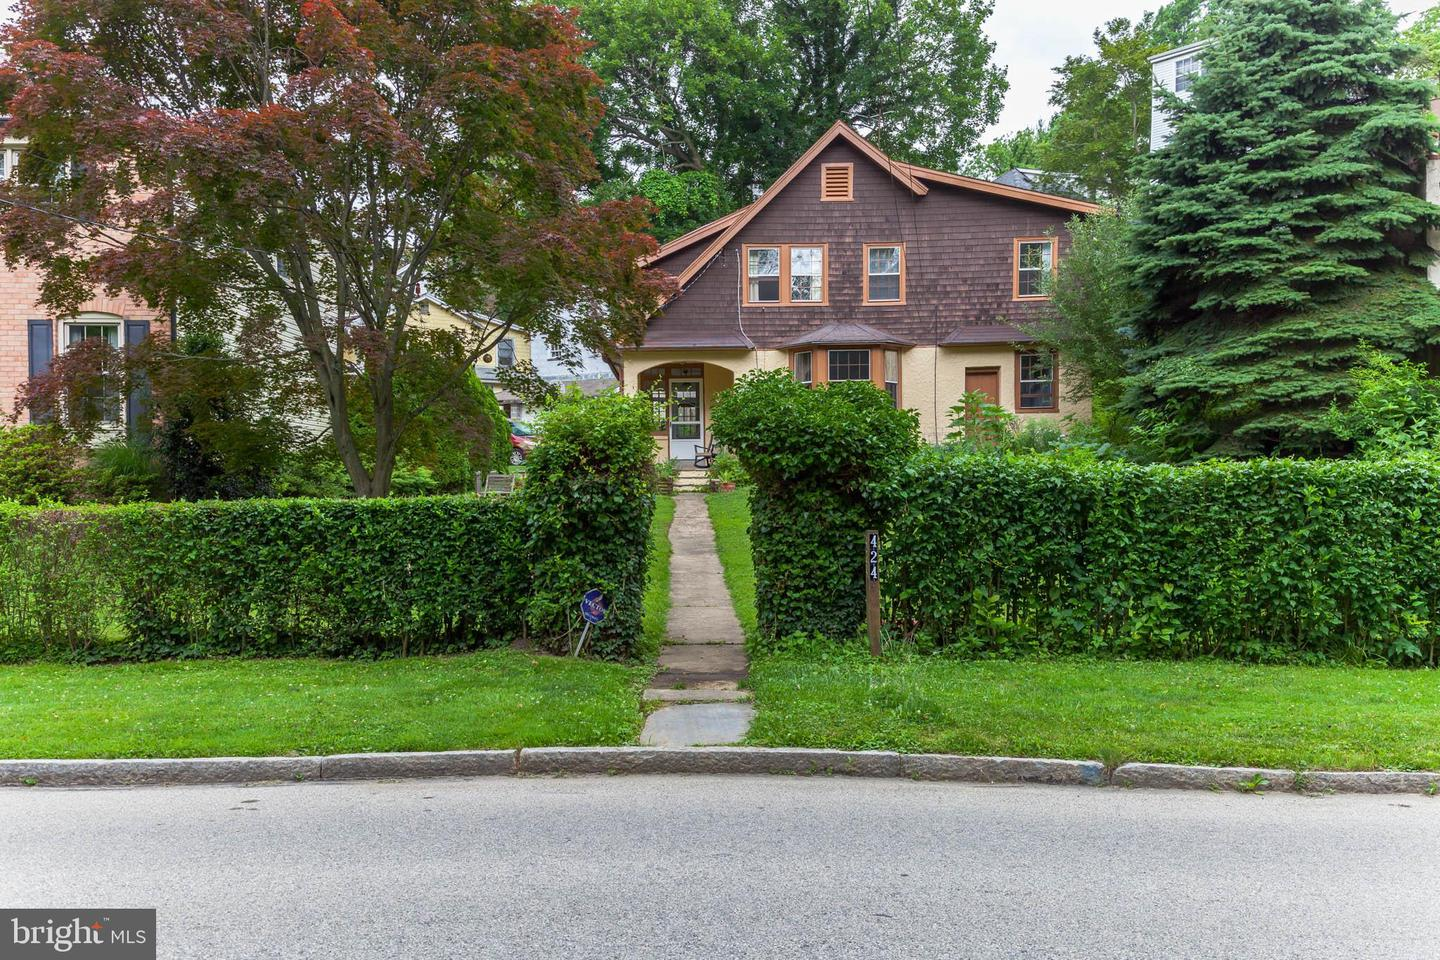 424 S Woodbine Avenue Narberth, PA 19072